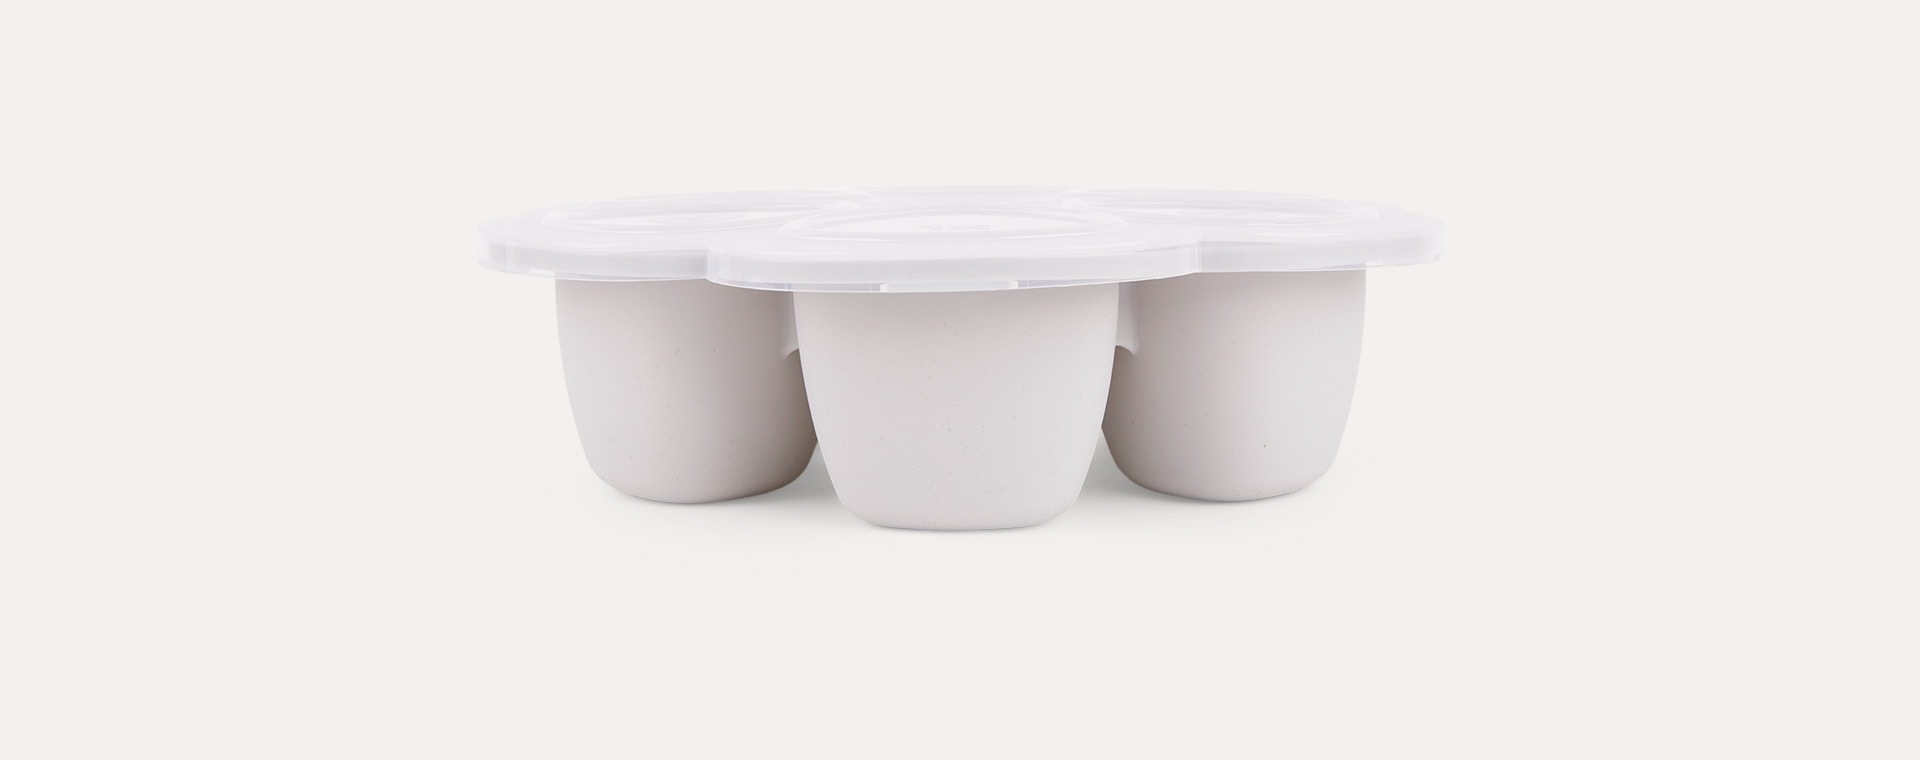 Light Mist Beaba Multi-Portion Food Containers - 6 x 150ml